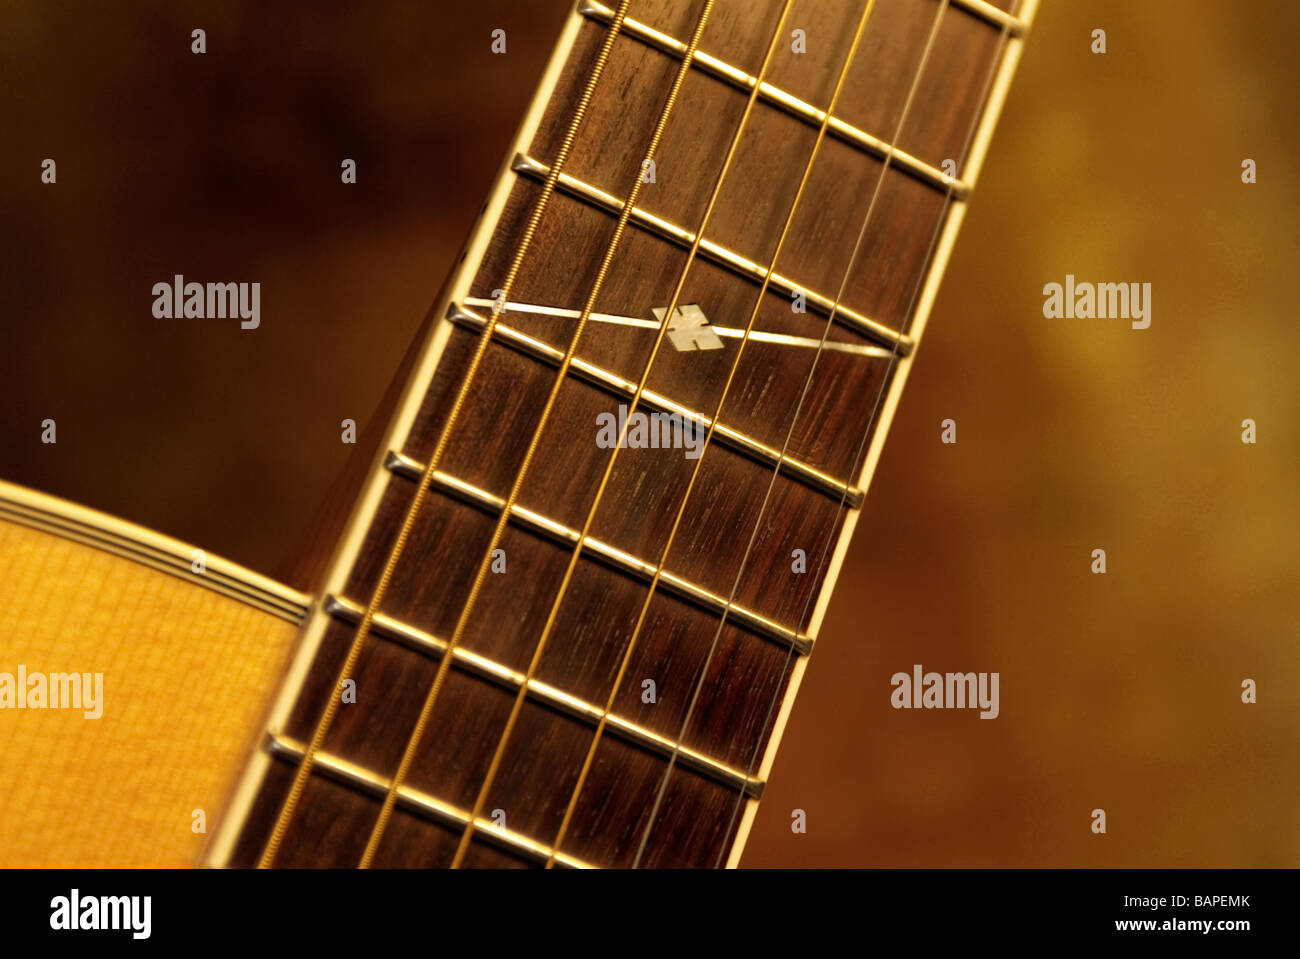 Rosewood Neck Stock Photos Images Alamy Alvarez Electric Guitar Wiring Diagram Steel String Jumbo Body Acoustic Made Of Maple With Frets And Strings